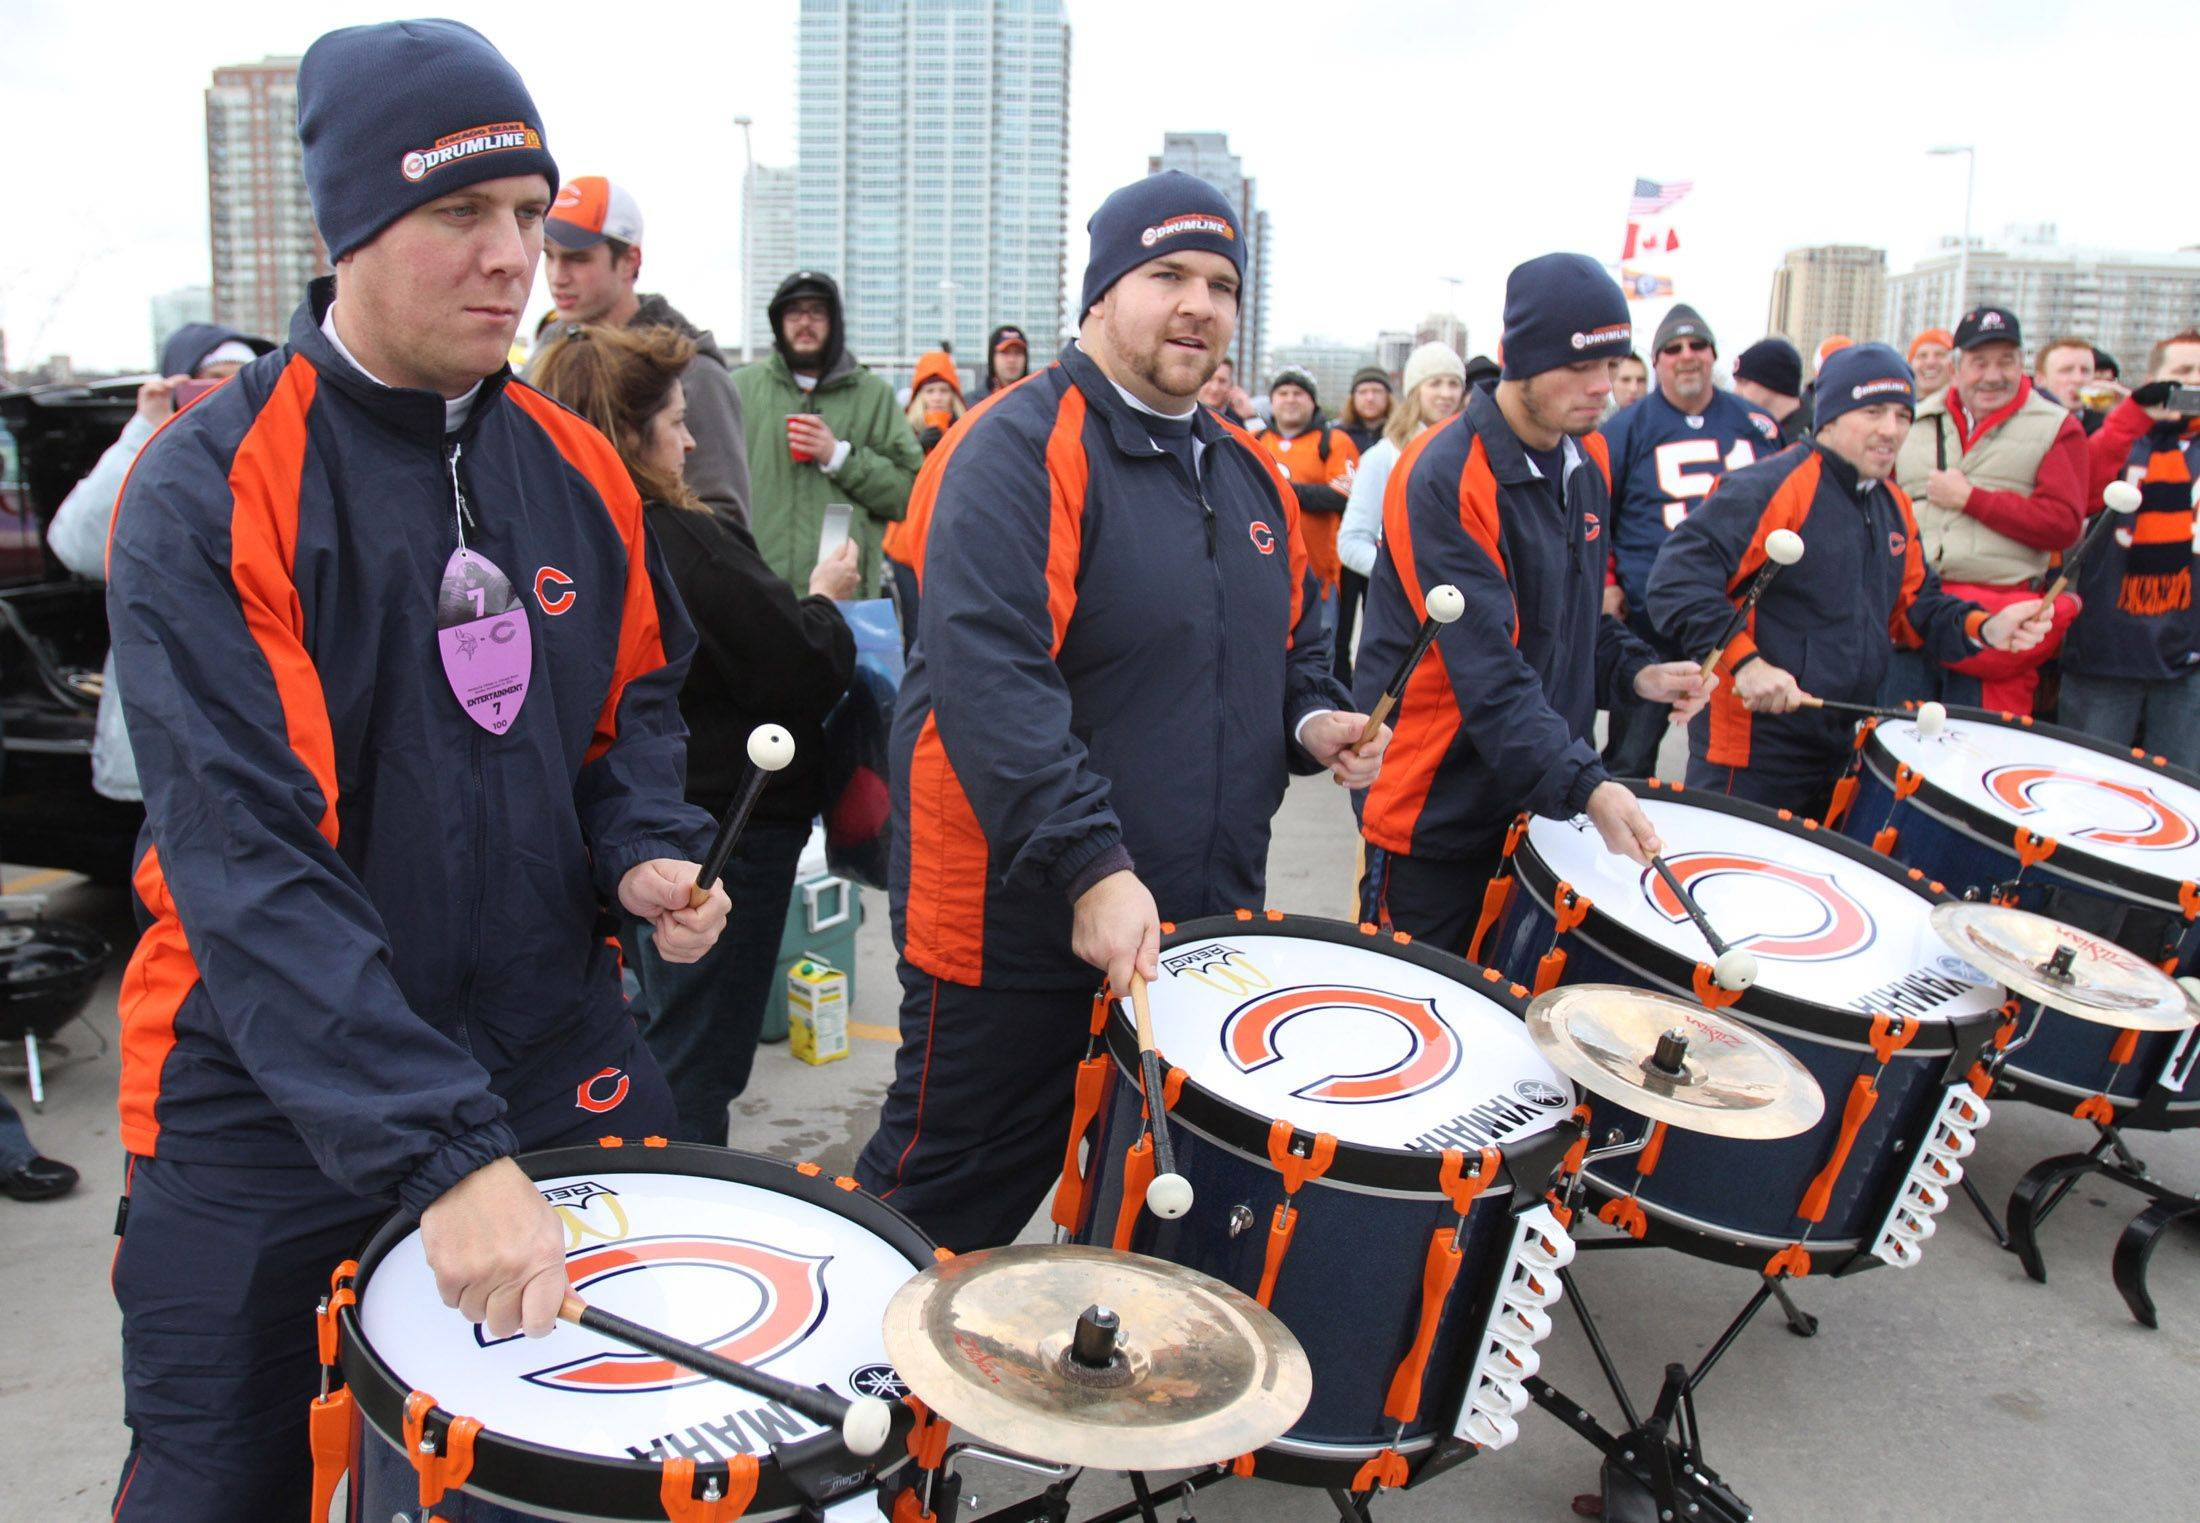 Matt Janus, left, a 1998 graduate of Prospect High School and a current band instructor, plays with the Chicago Bears drum major in the parking lot of Soldier Field before the game with Minnesota Vikings.